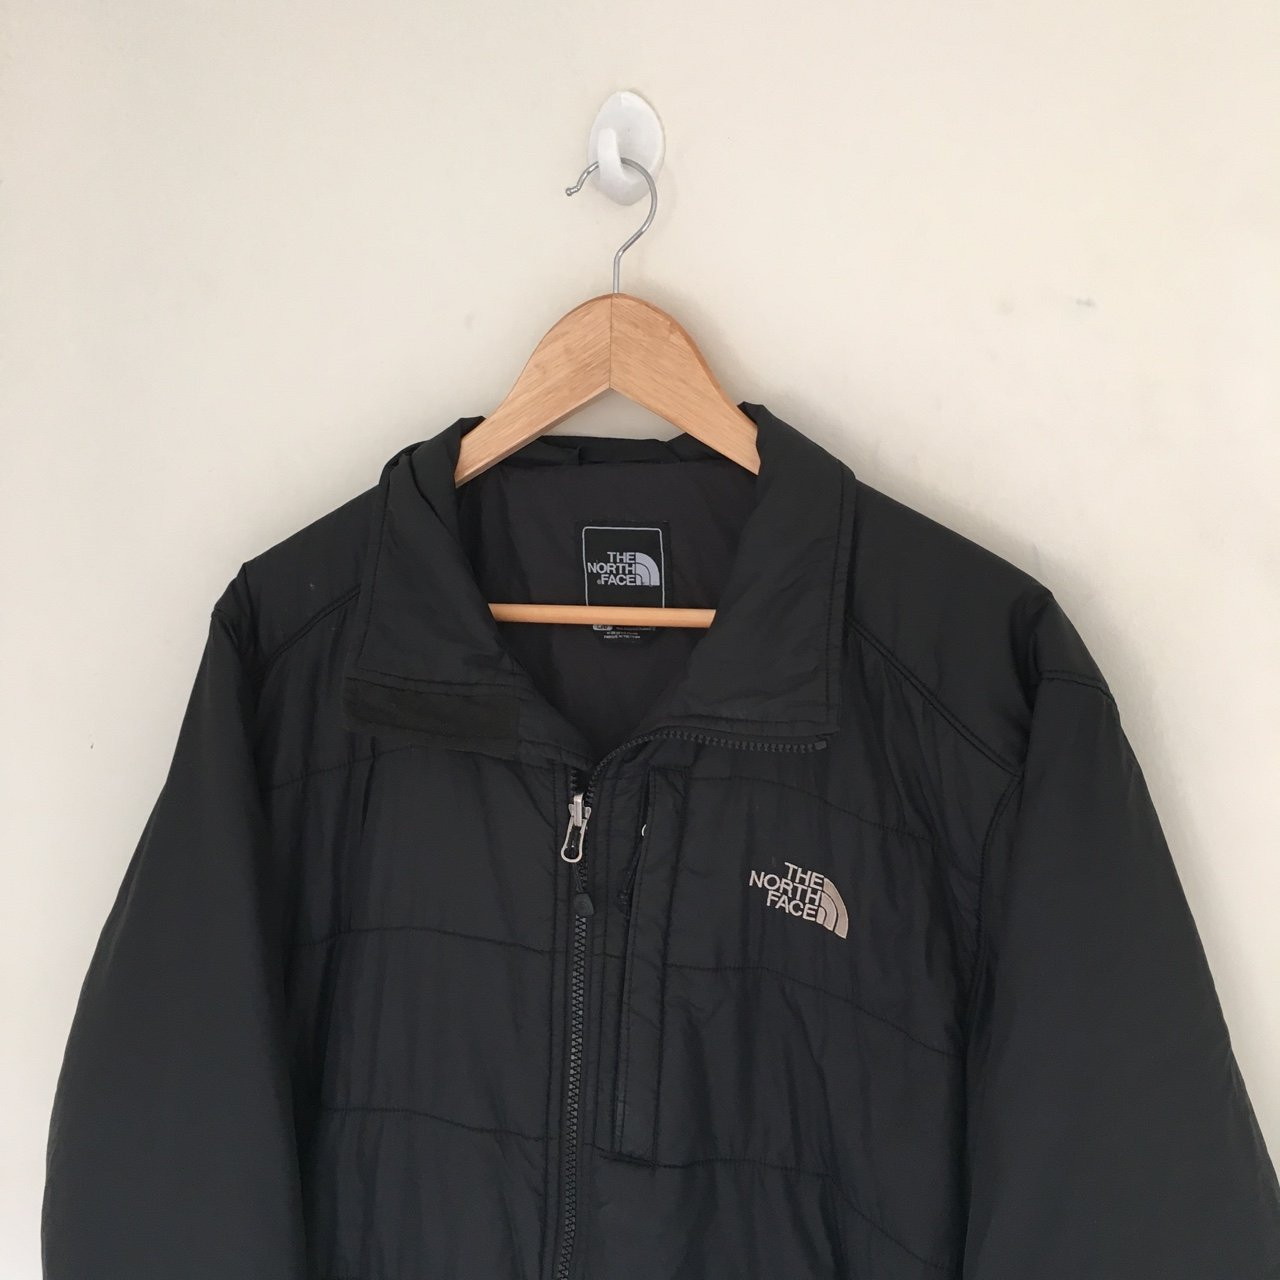 North face thin puffer jacket size large Mens • black • good - Depop a3a342b6b